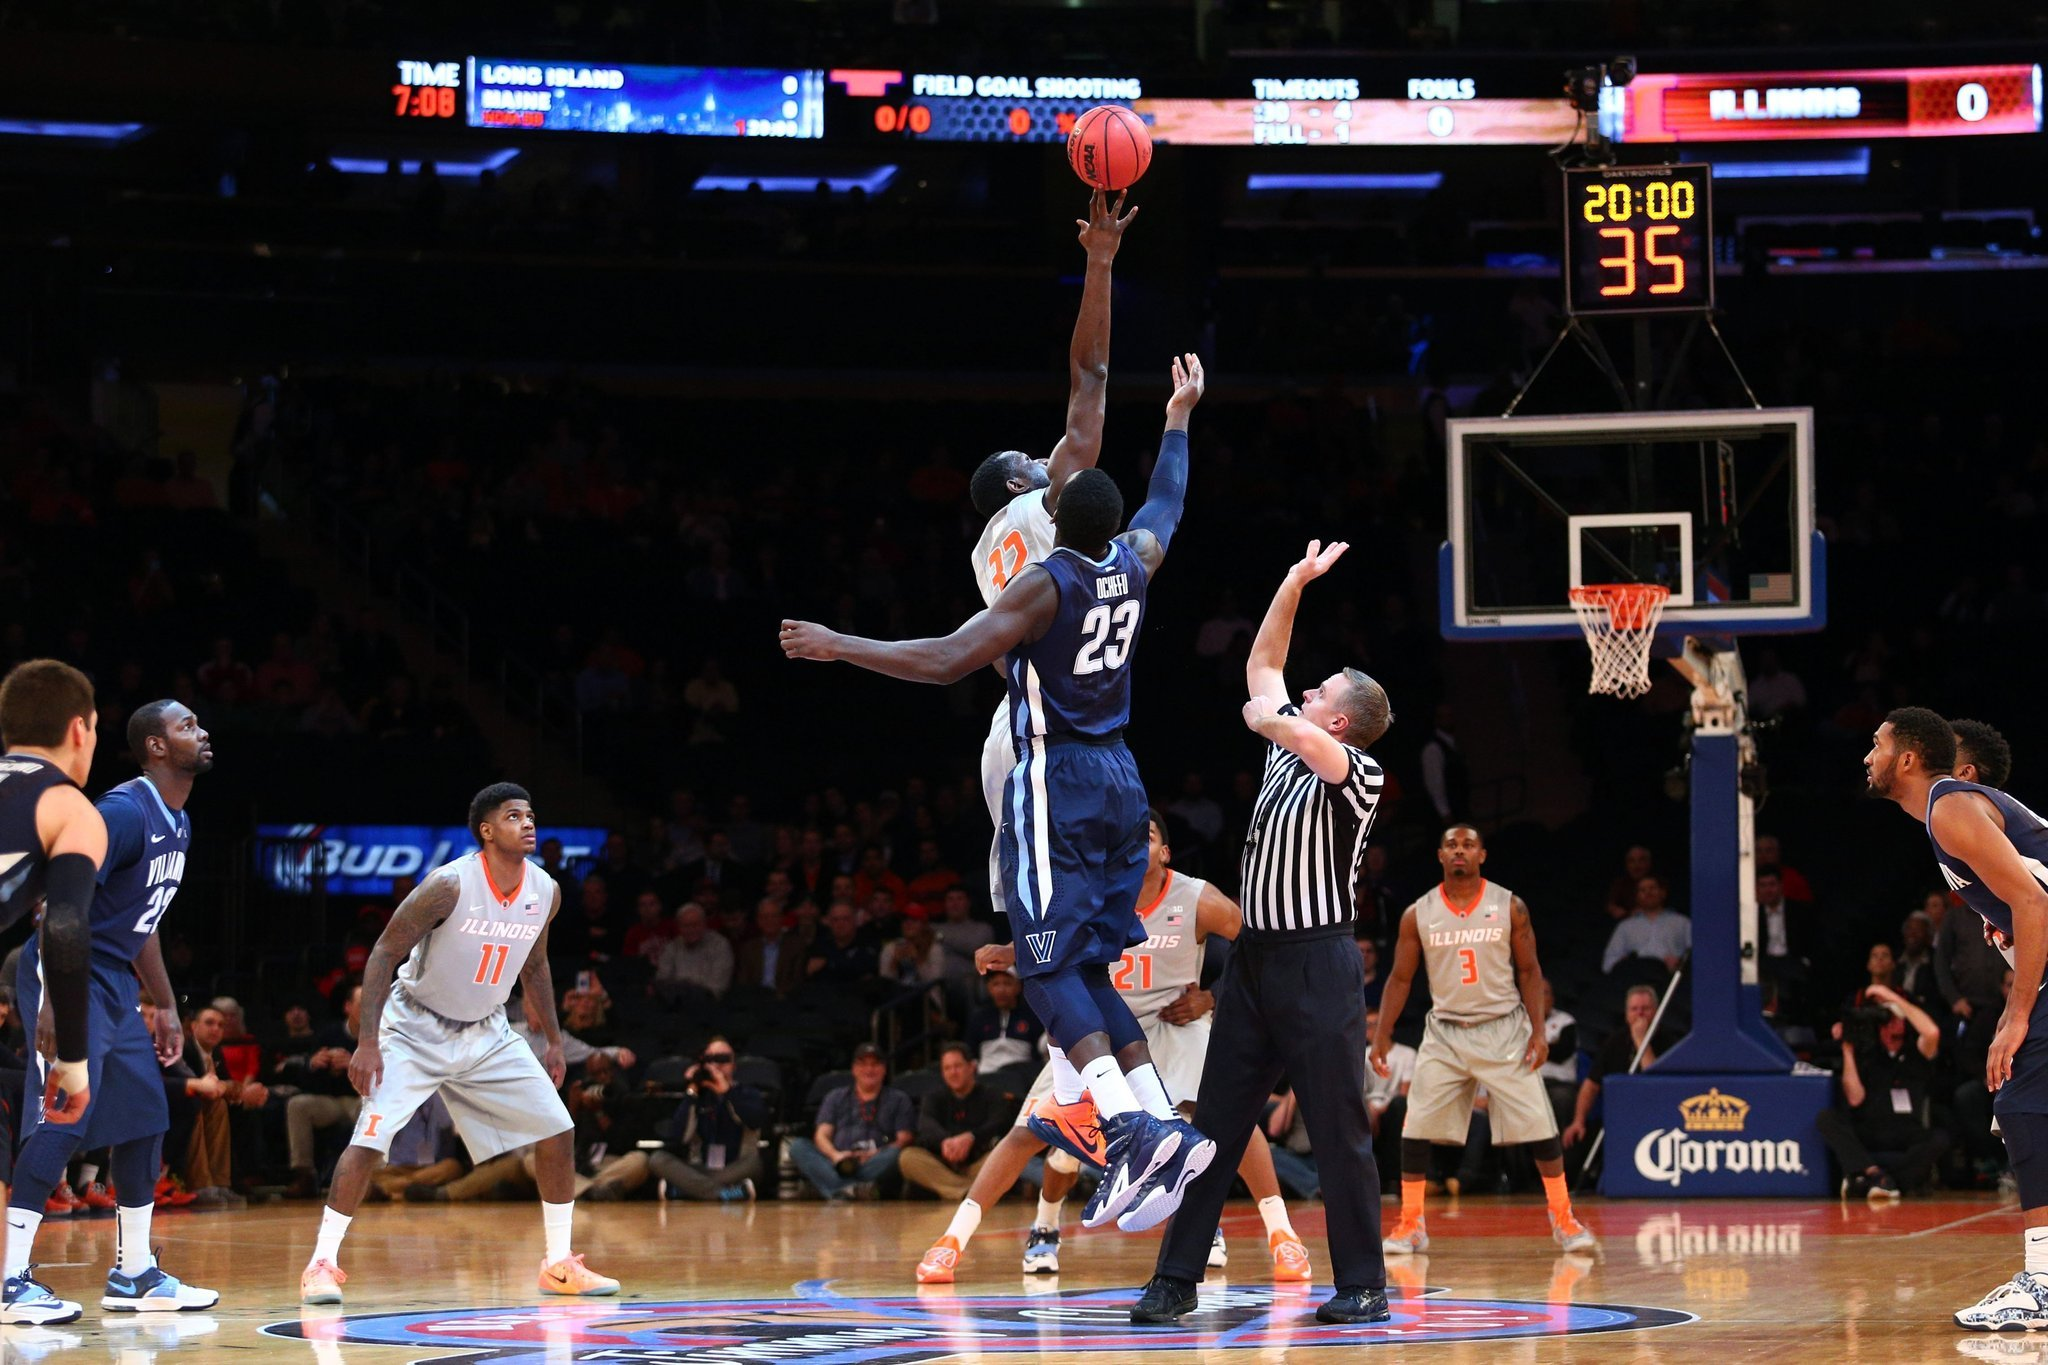 Big Ten Wants Madison Square Garden To Be Regular Stop For Tournament Chicago Tribune